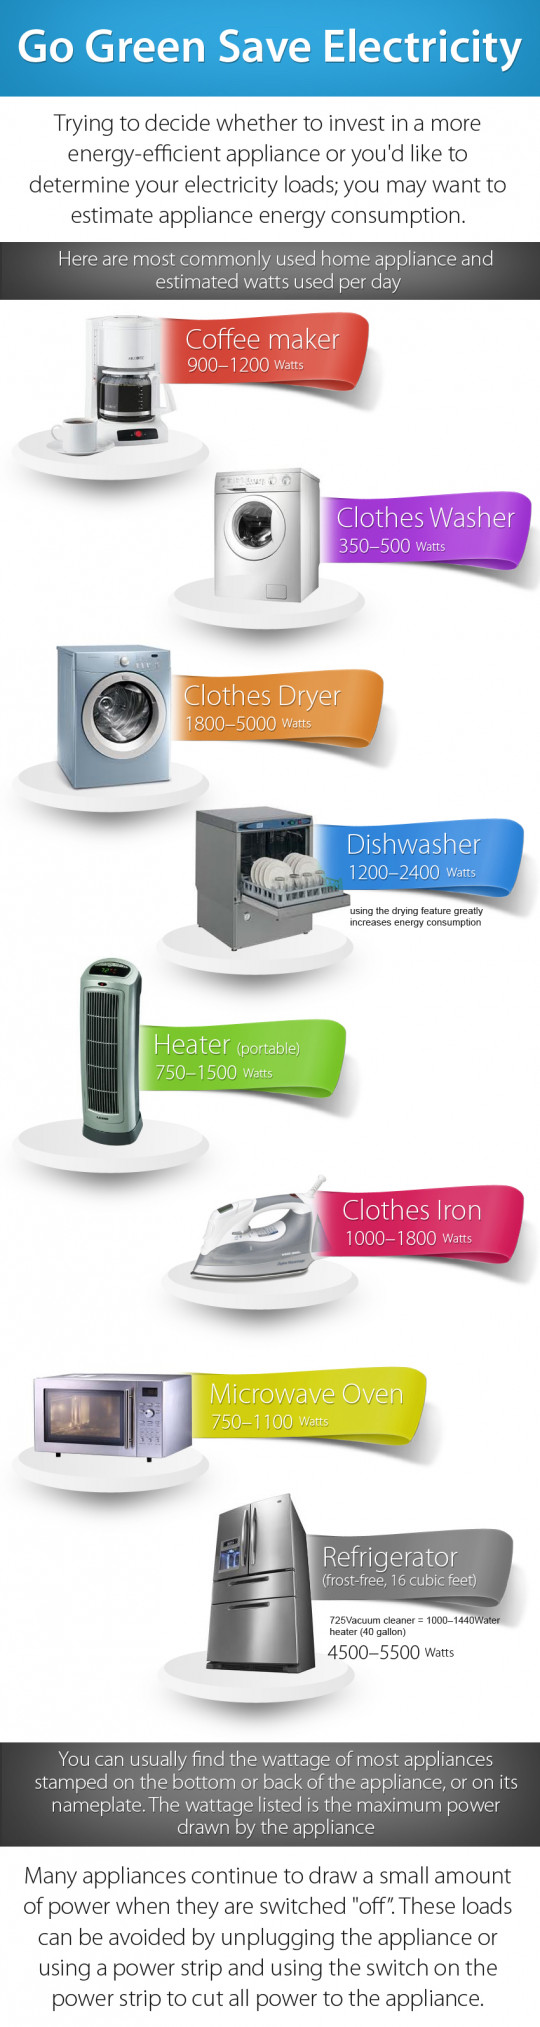 Save Energy through Smart Use of Appliance